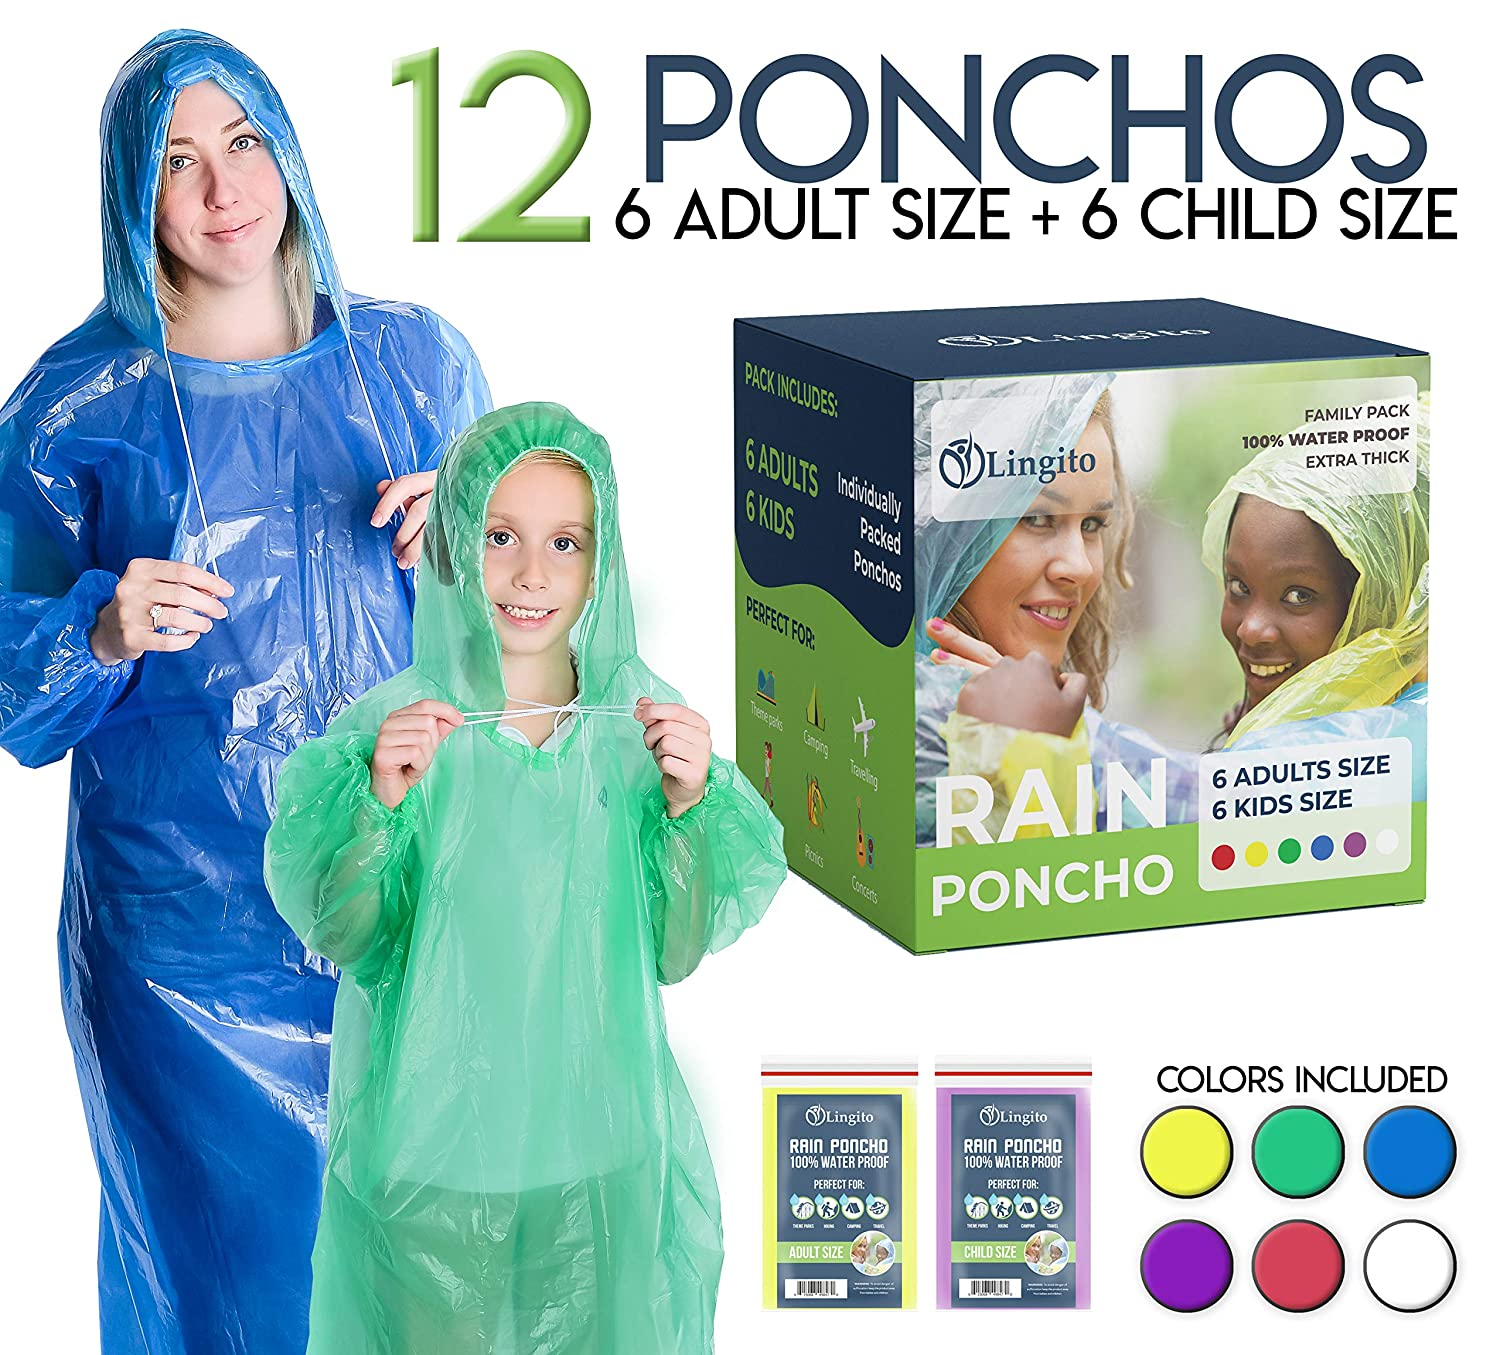 Lingito Rain Ponchos Family Pack   Emergency Raincoat Drawstring Hood Poncho for Children and Adults   Lightweight Reusable or Disposable 4 Pack, 8 Pack or 12 Pack